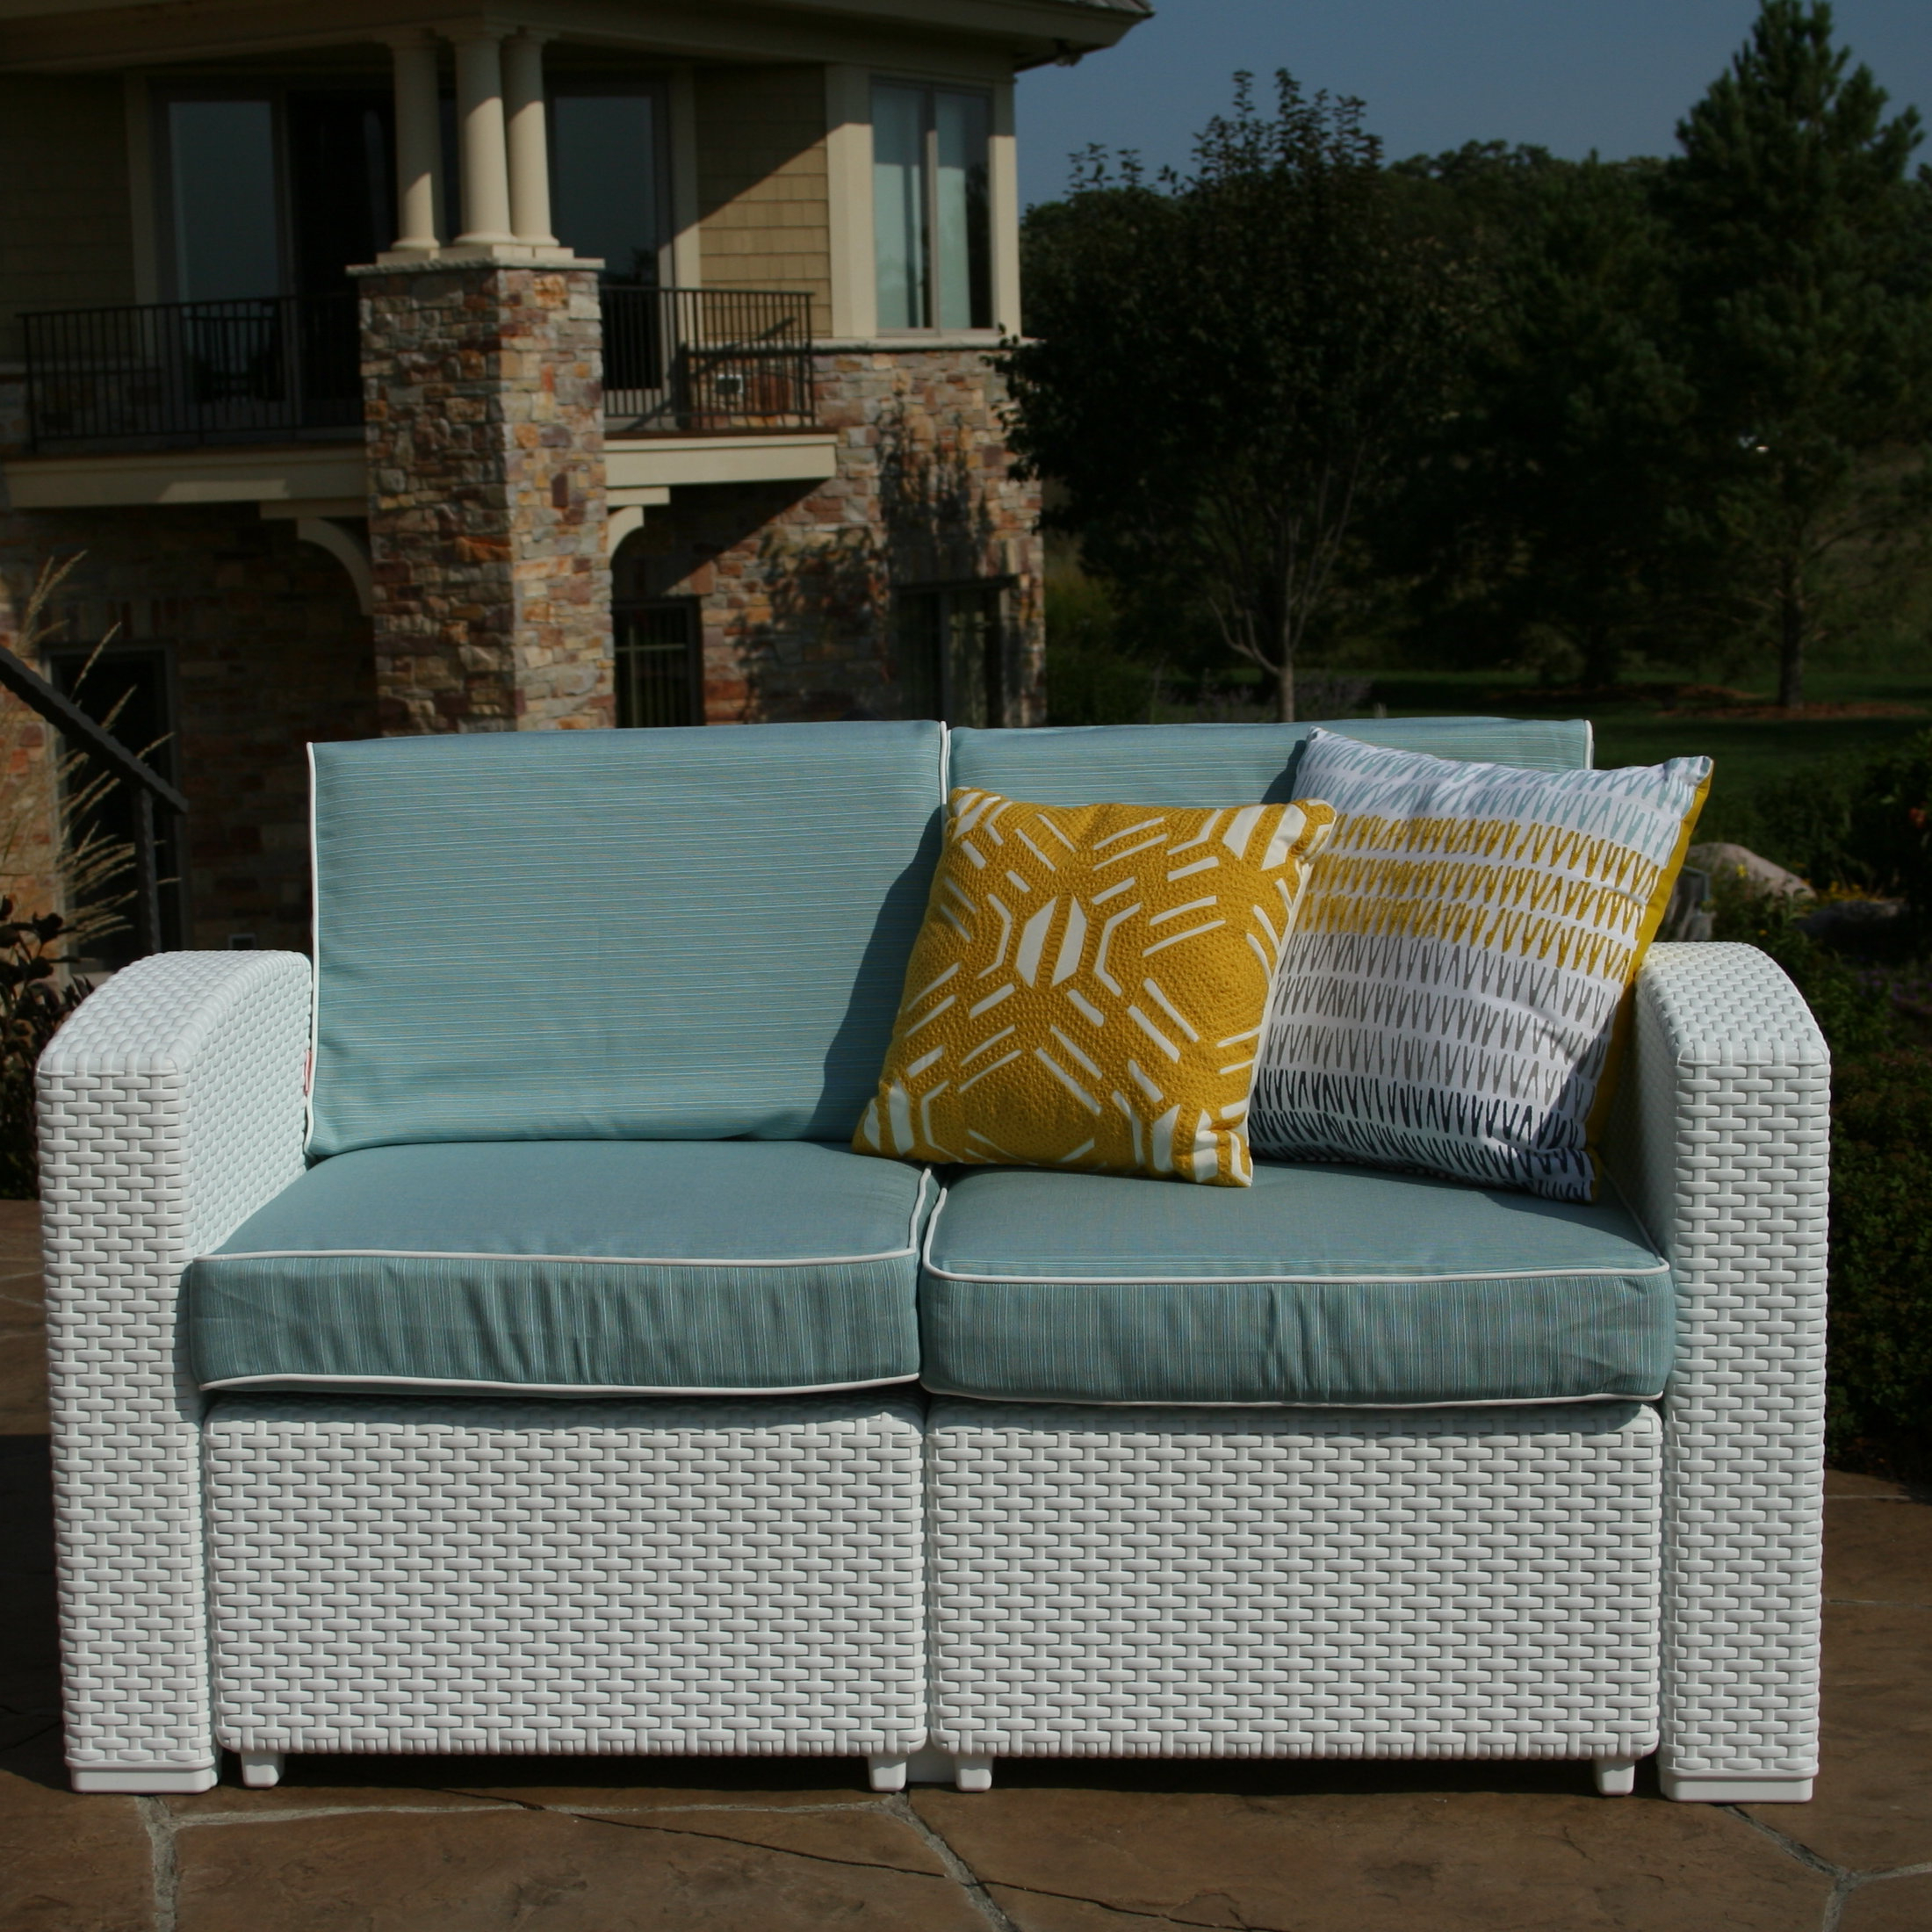 Loggins Patio Loveseat With Cushions With Regard To Favorite Loggins Loveseats With Cushions (View 11 of 20)